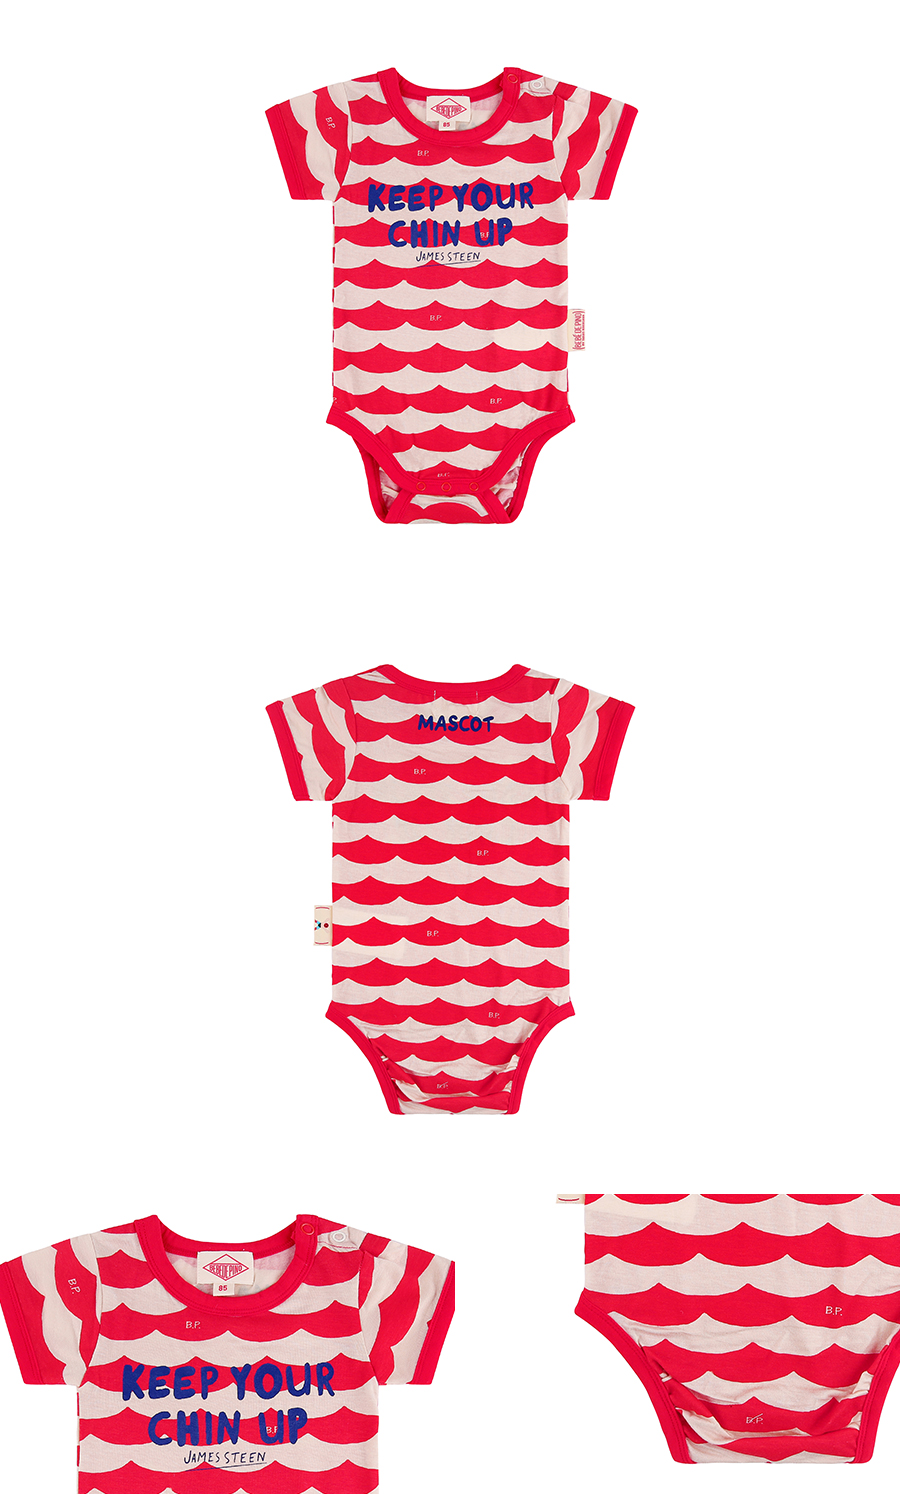 Multi scarlet wave baby short sleeve bodysuit 상세 이미지